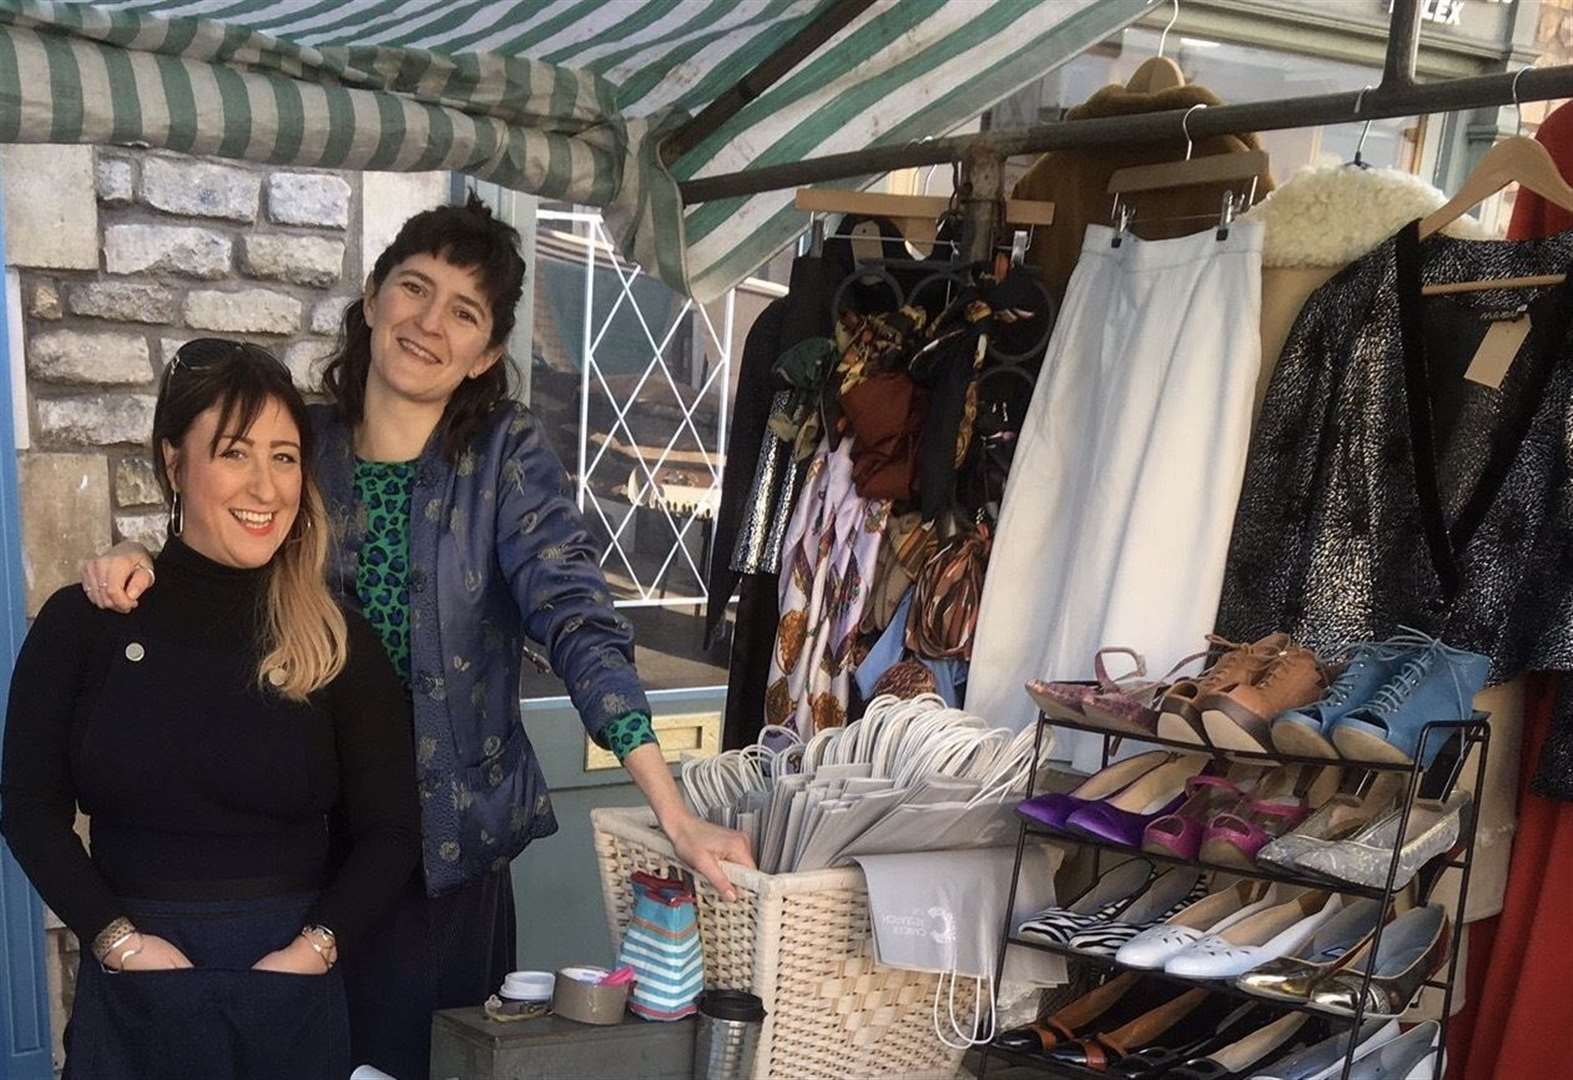 Vintage pop-up shop to support charity